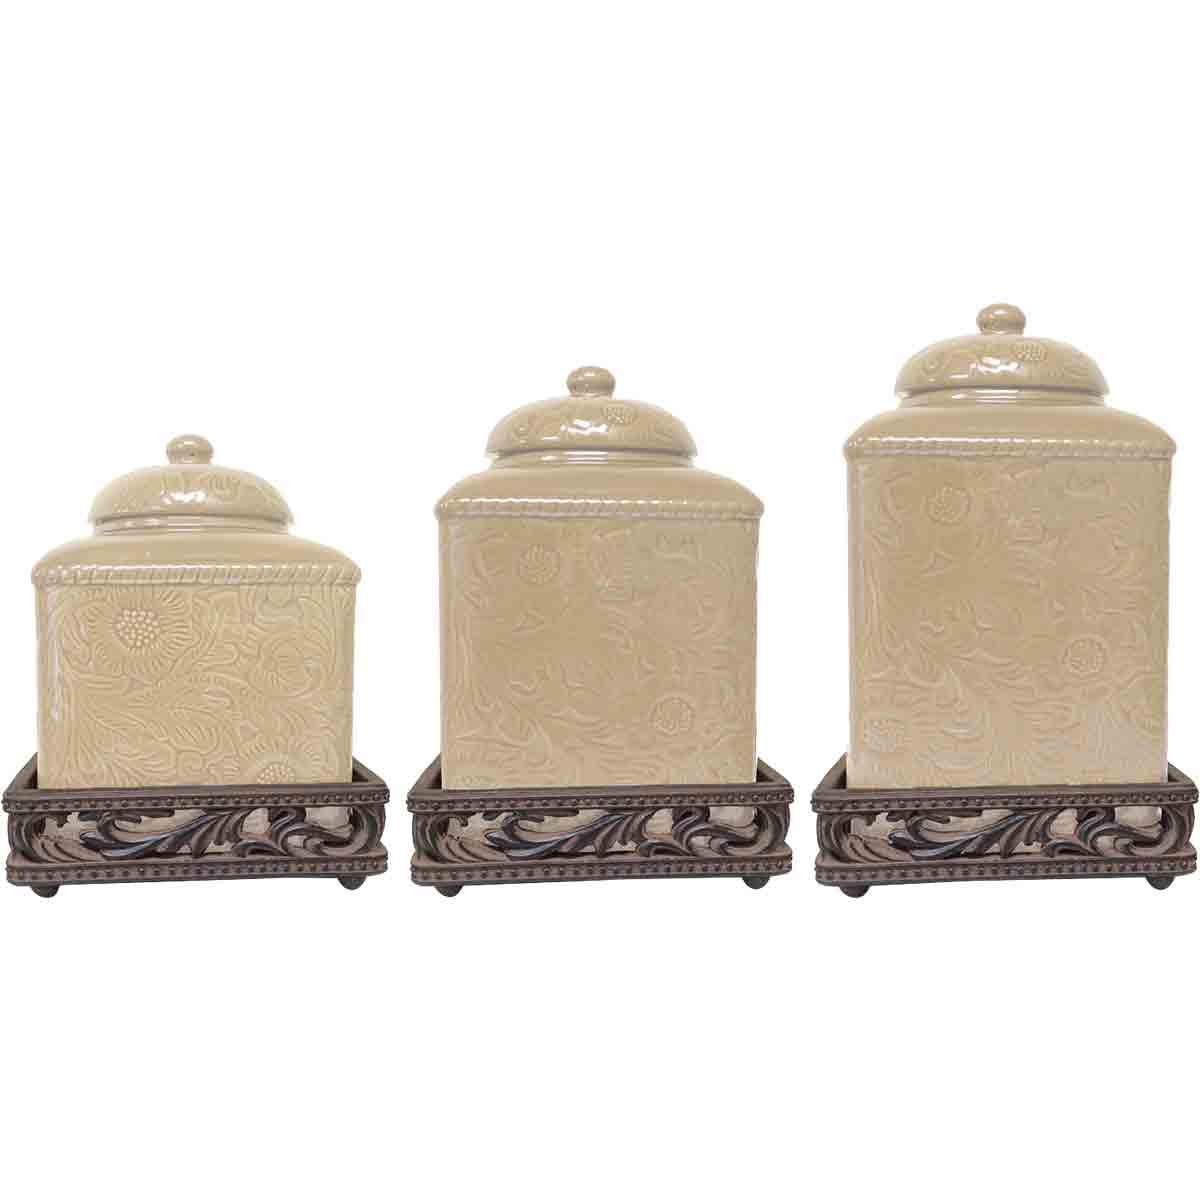 Savannah Cream Canister Set with Base - OUT OF STOCK UNTIL 2/3/2021